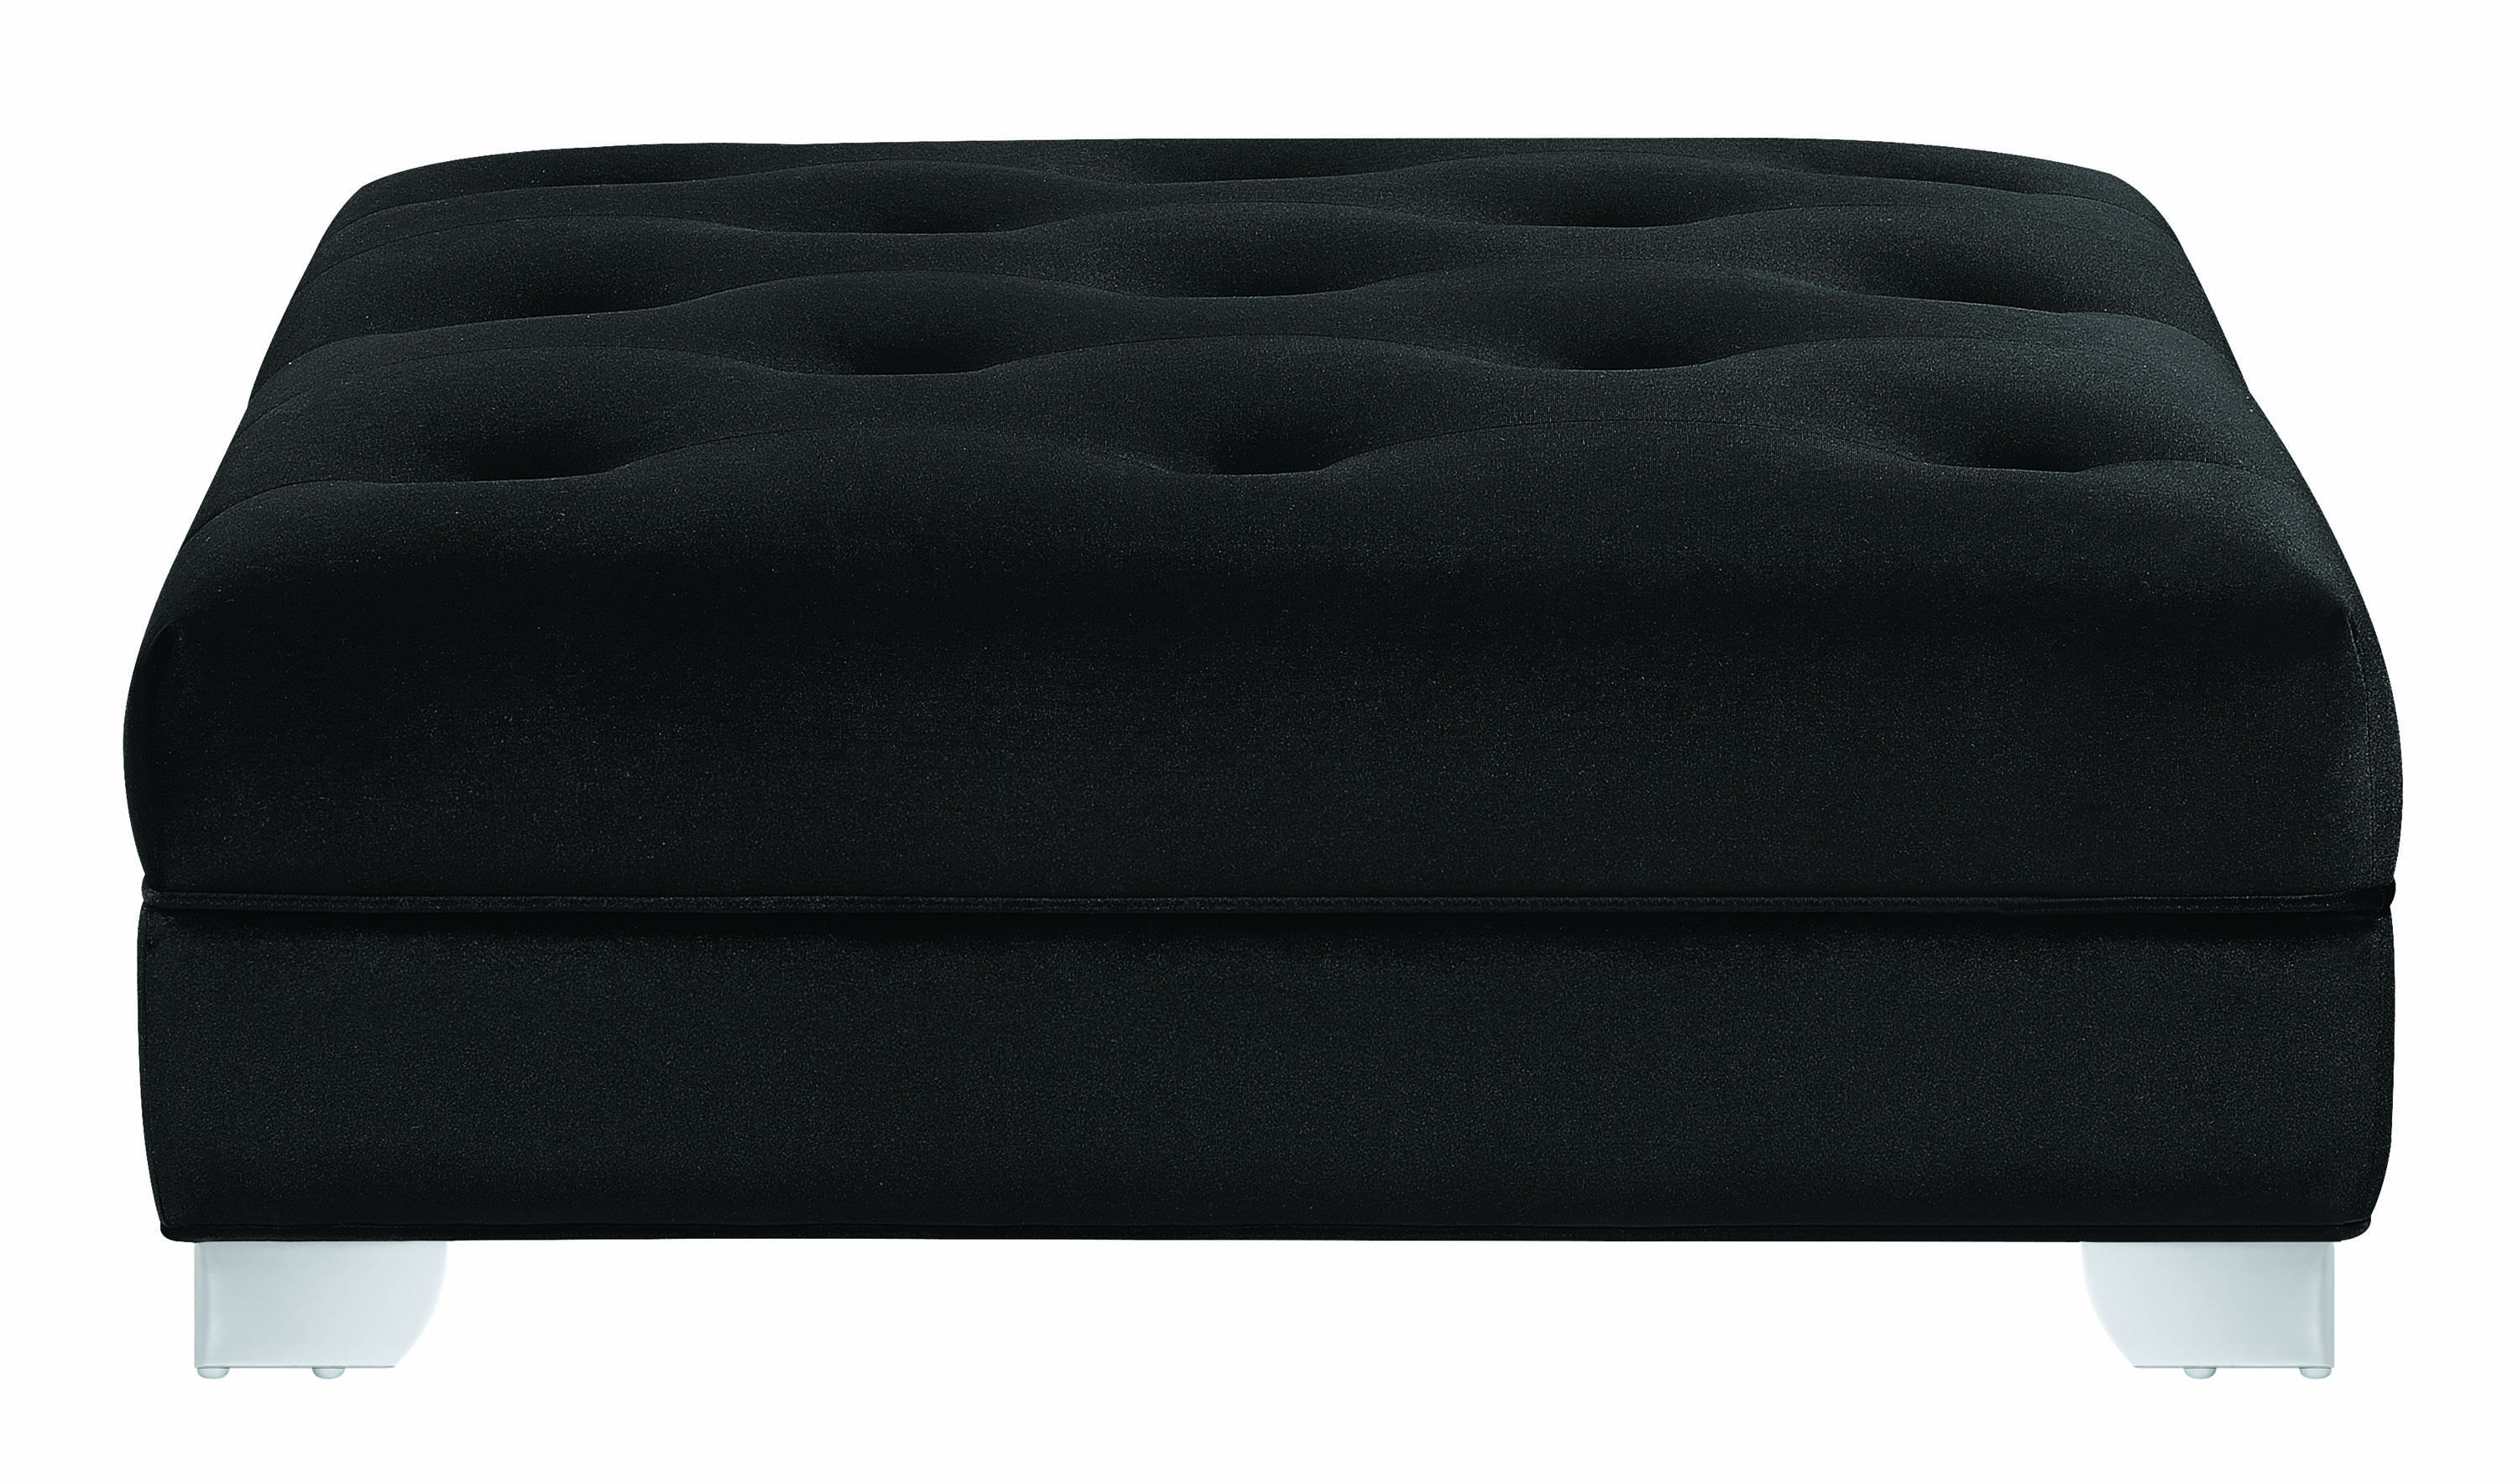 Remarkable Coaster Furniture Chaviano Black Ottoman Alphanode Cool Chair Designs And Ideas Alphanodeonline